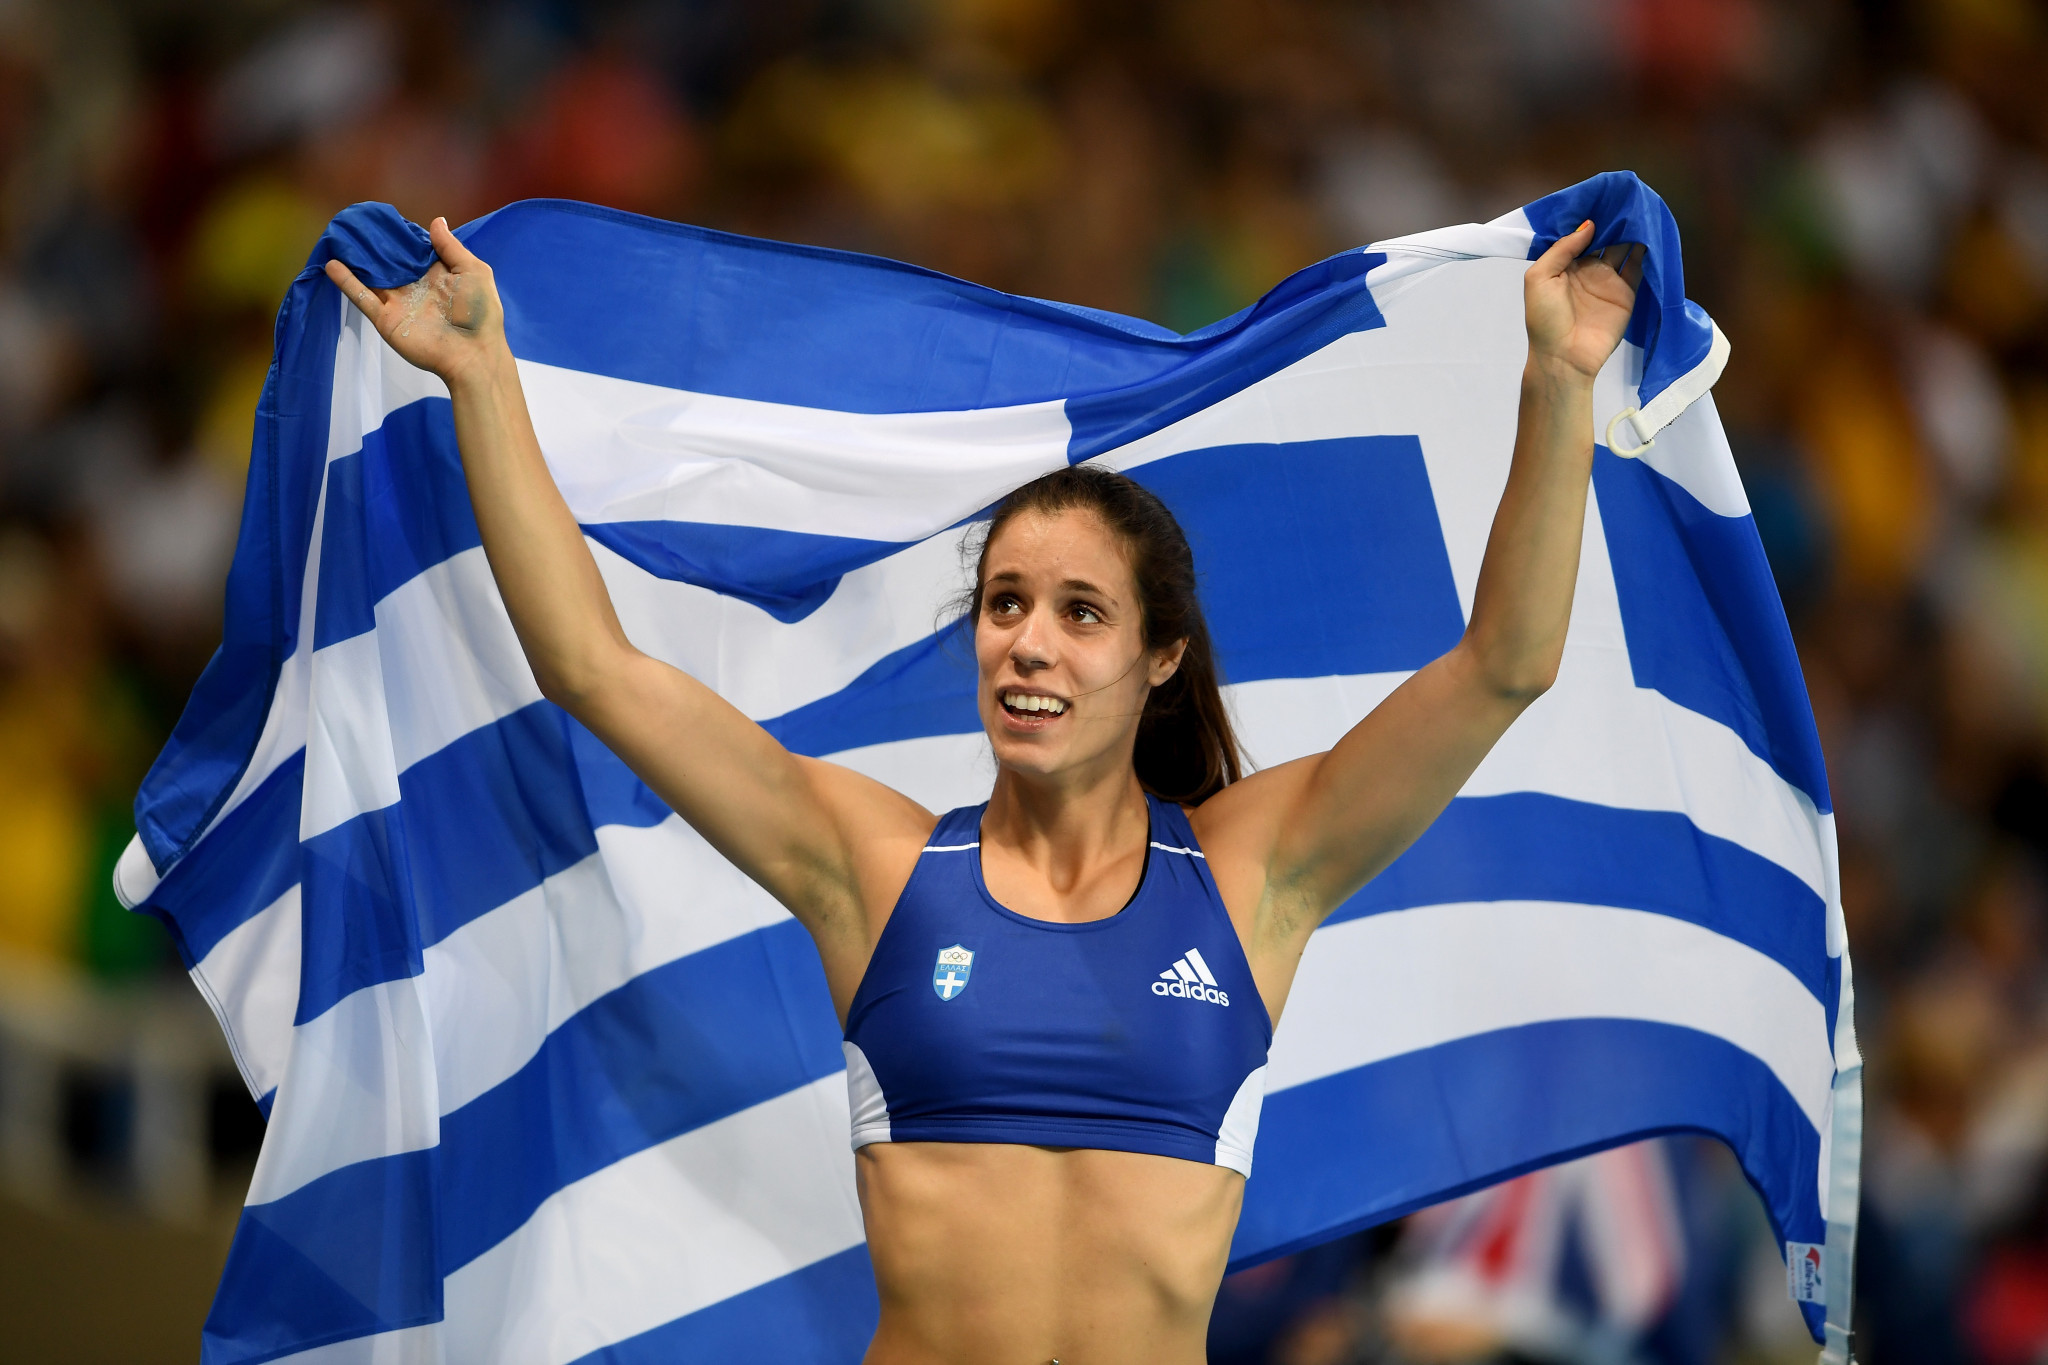 Katerina Stefanidi has been critical of the Interanational Olympic Committee's stance on Tokyo 2020 ©Getty Images